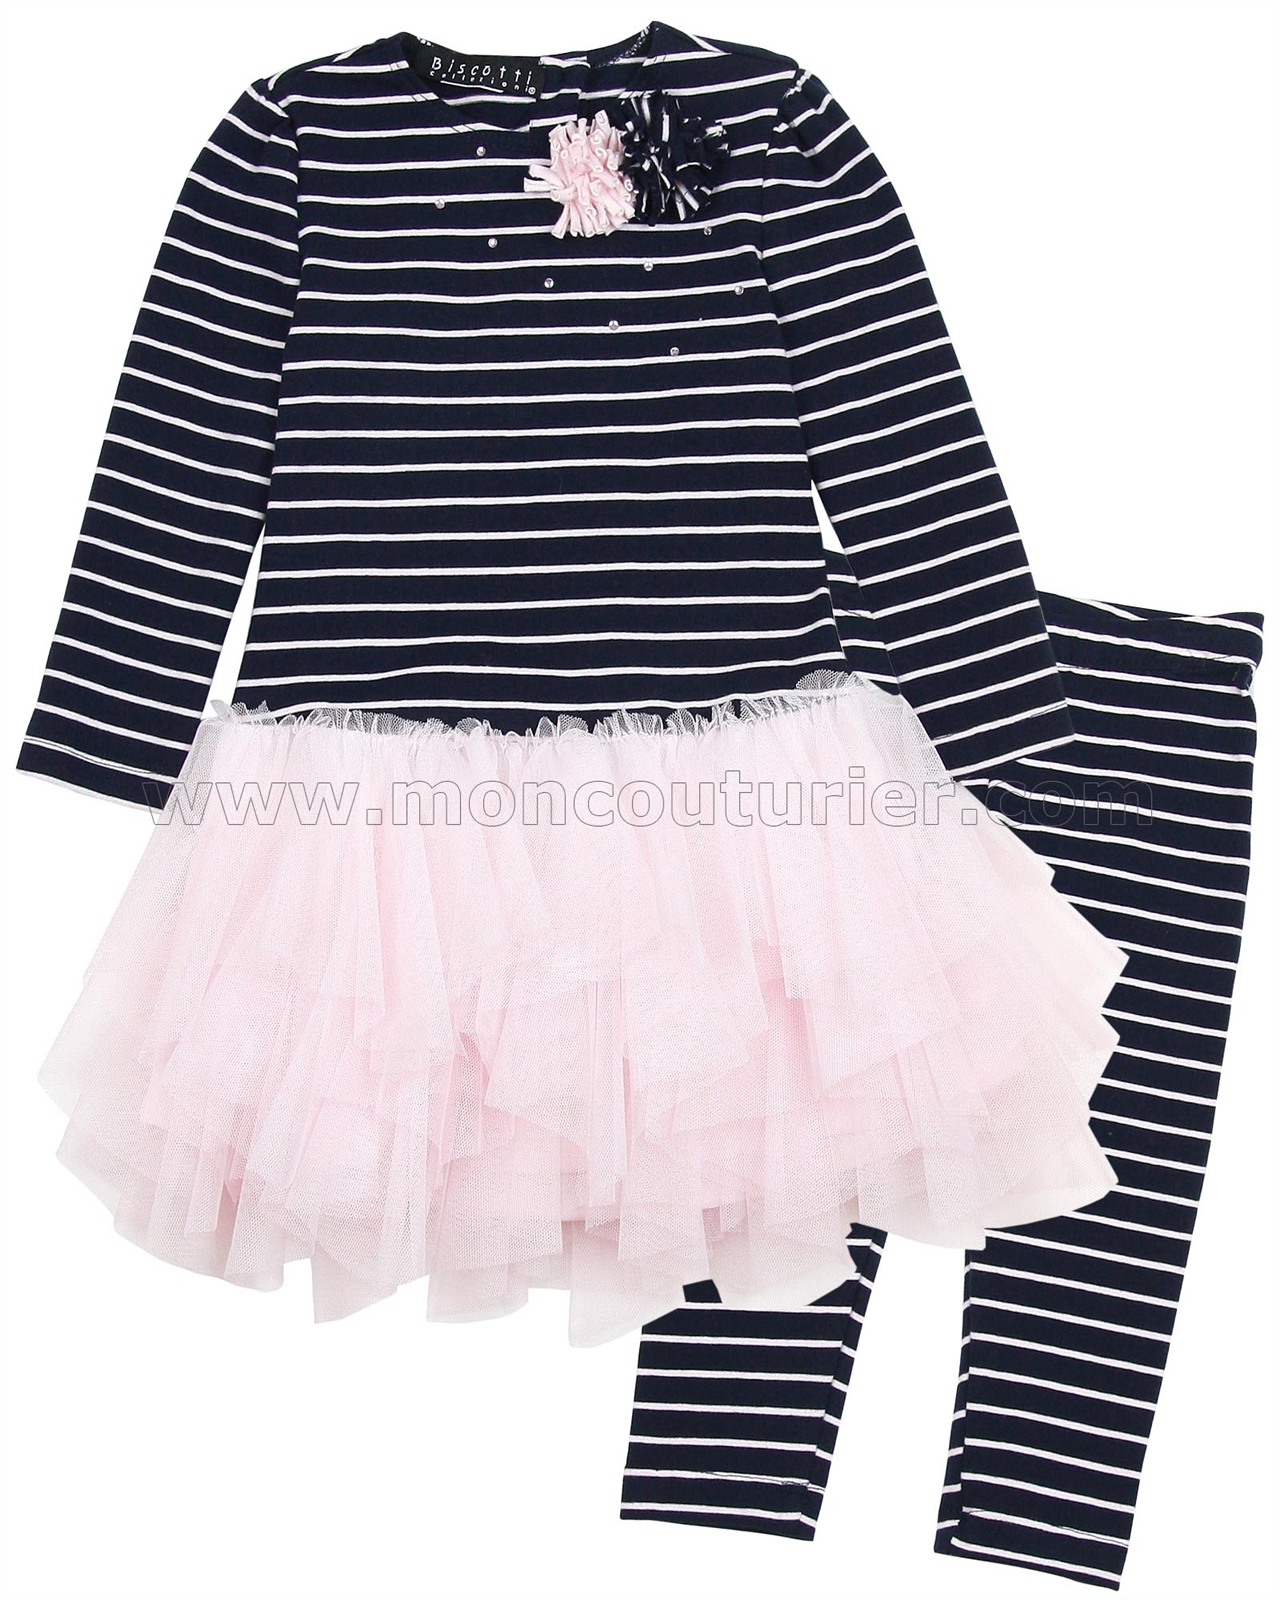 Clothing, Shoes & Accessories Baby & Toddler Clothing Biscotti Collection Pink 2 Piece Set Covered In Ruffles Size 2